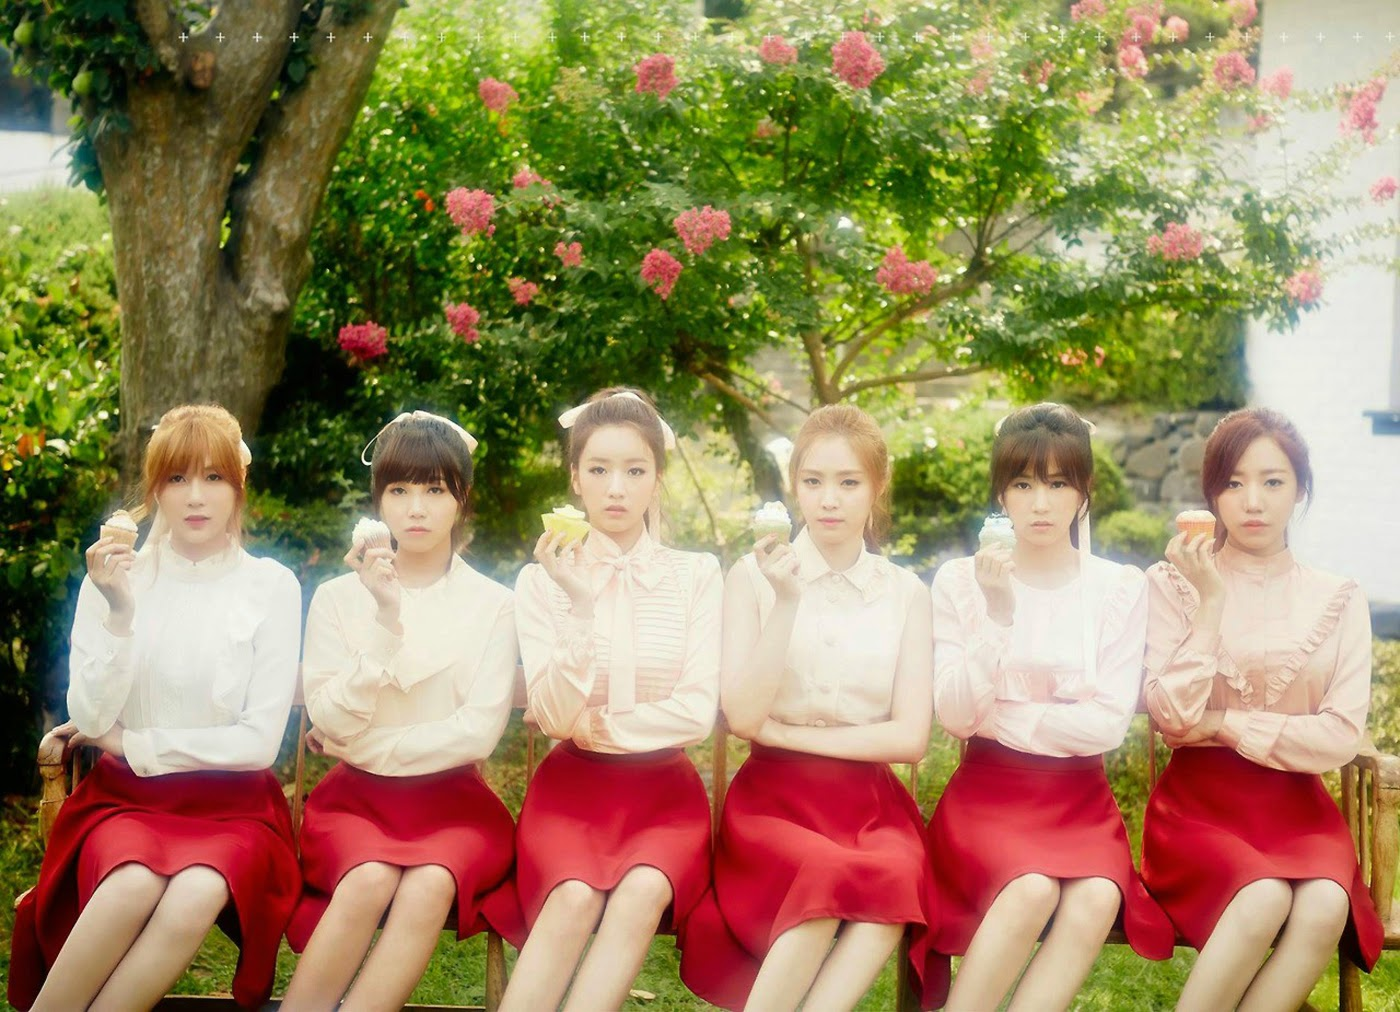 Apink Pink Luv Concept